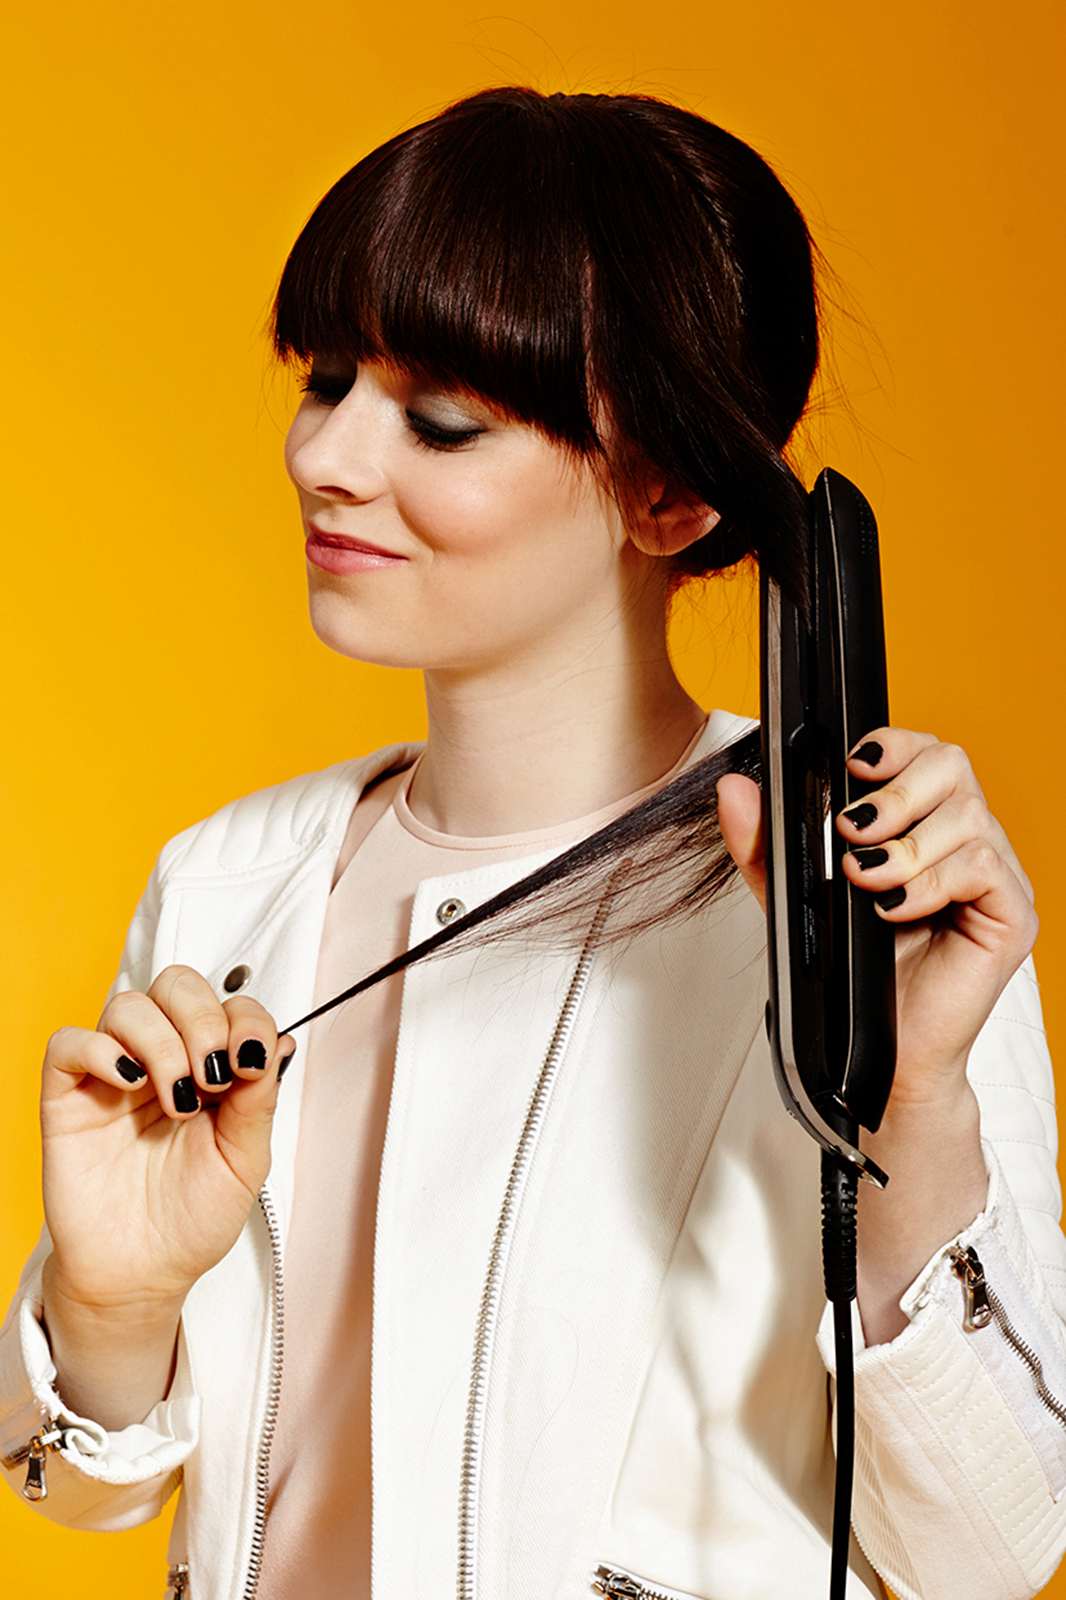 Refinery29 x Toni and Guy - Jag Lever - I Live